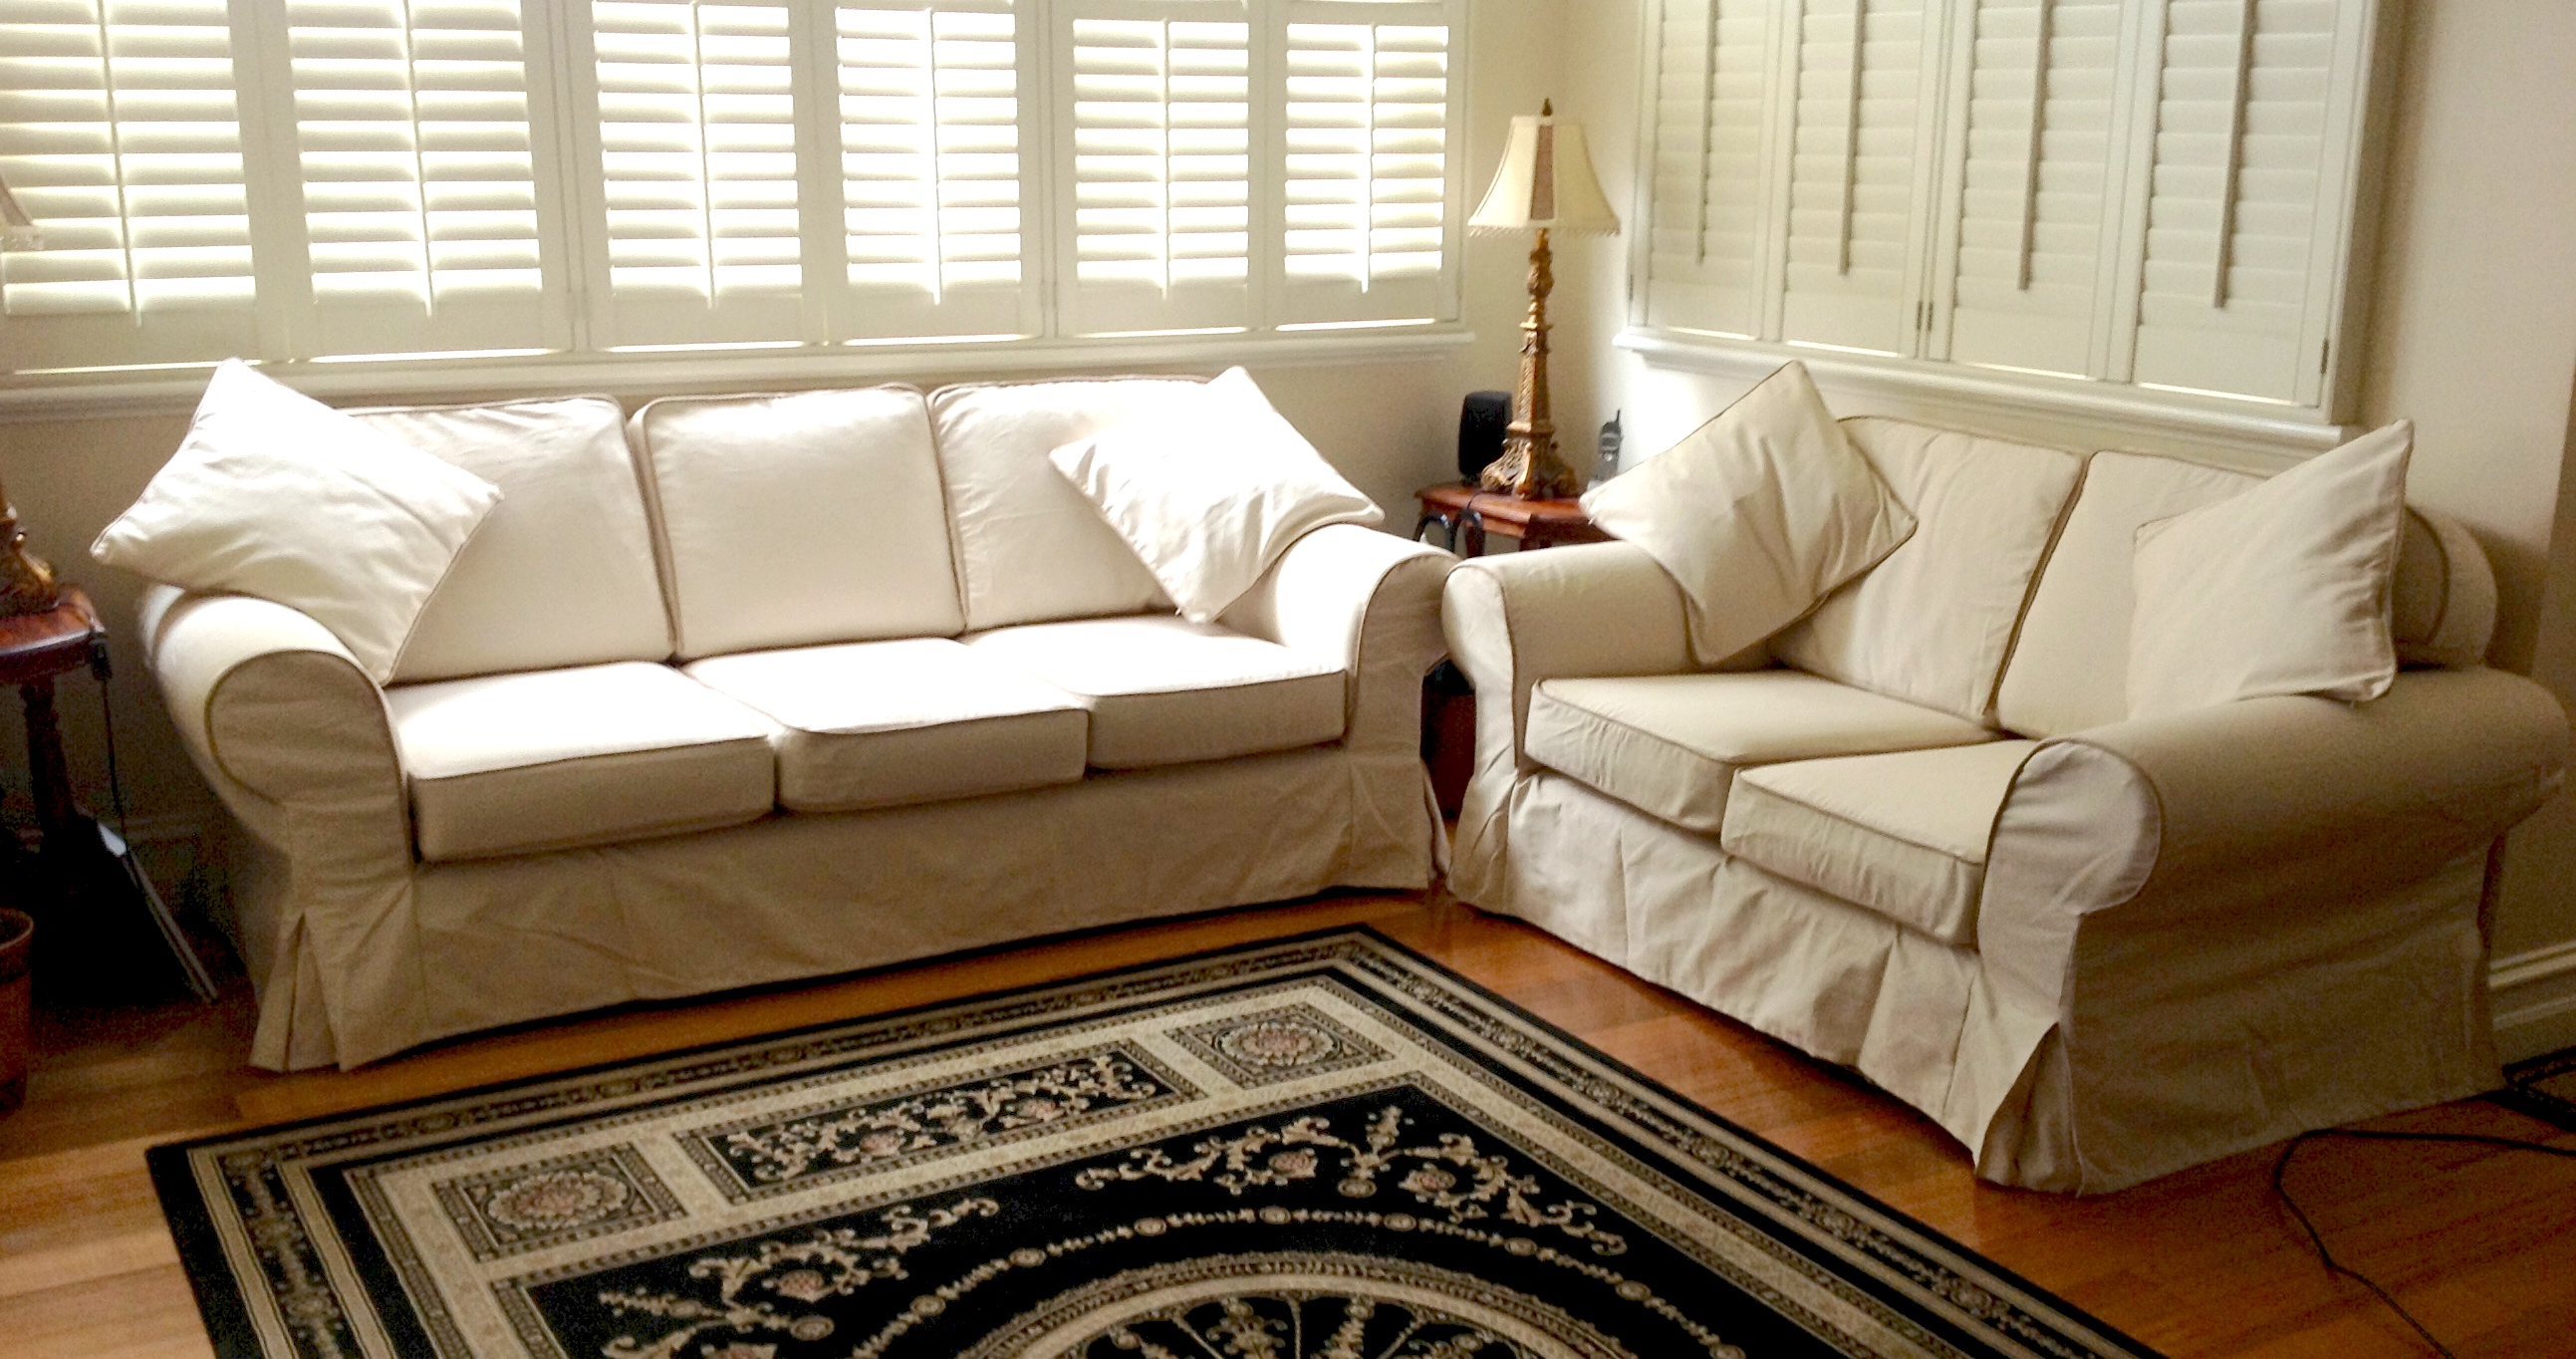 Decorative Slipcover Sofa For Astonishing Room Ideas